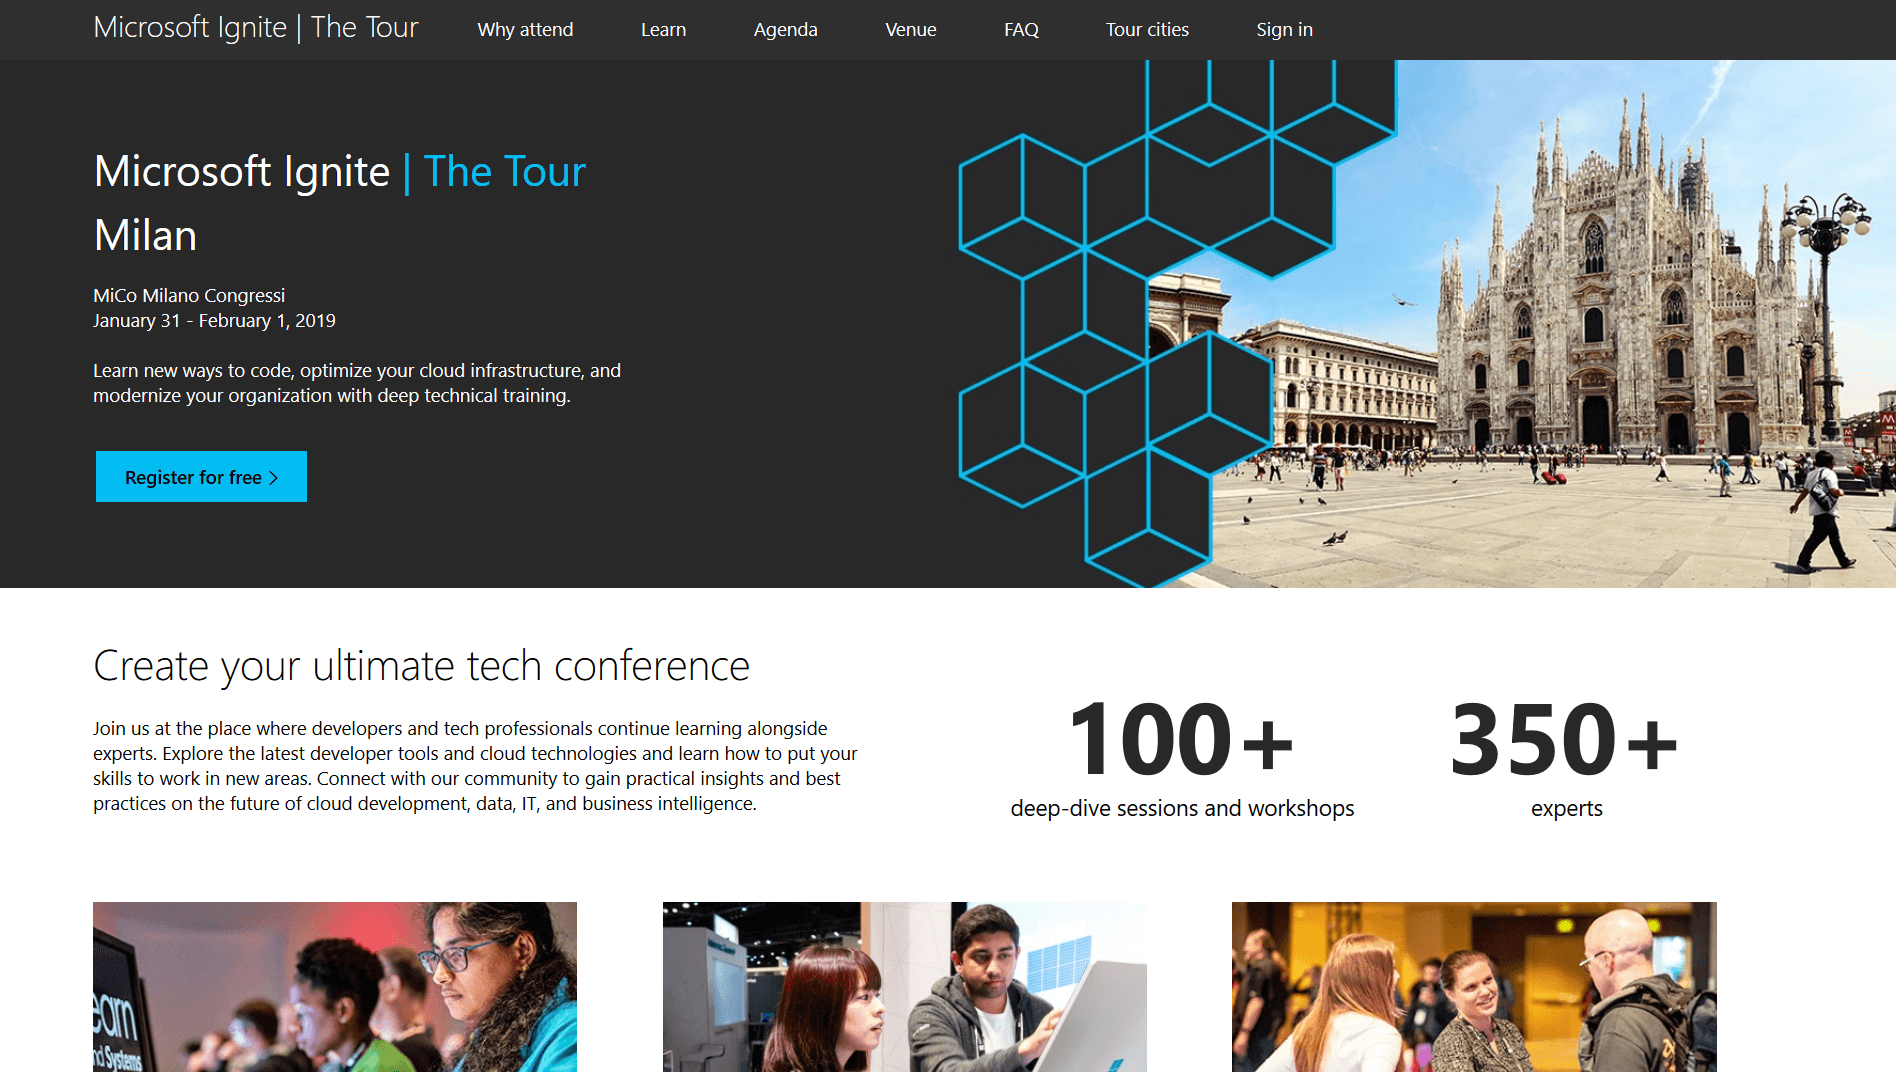 Microsoft Ignite | The Tour - Milan